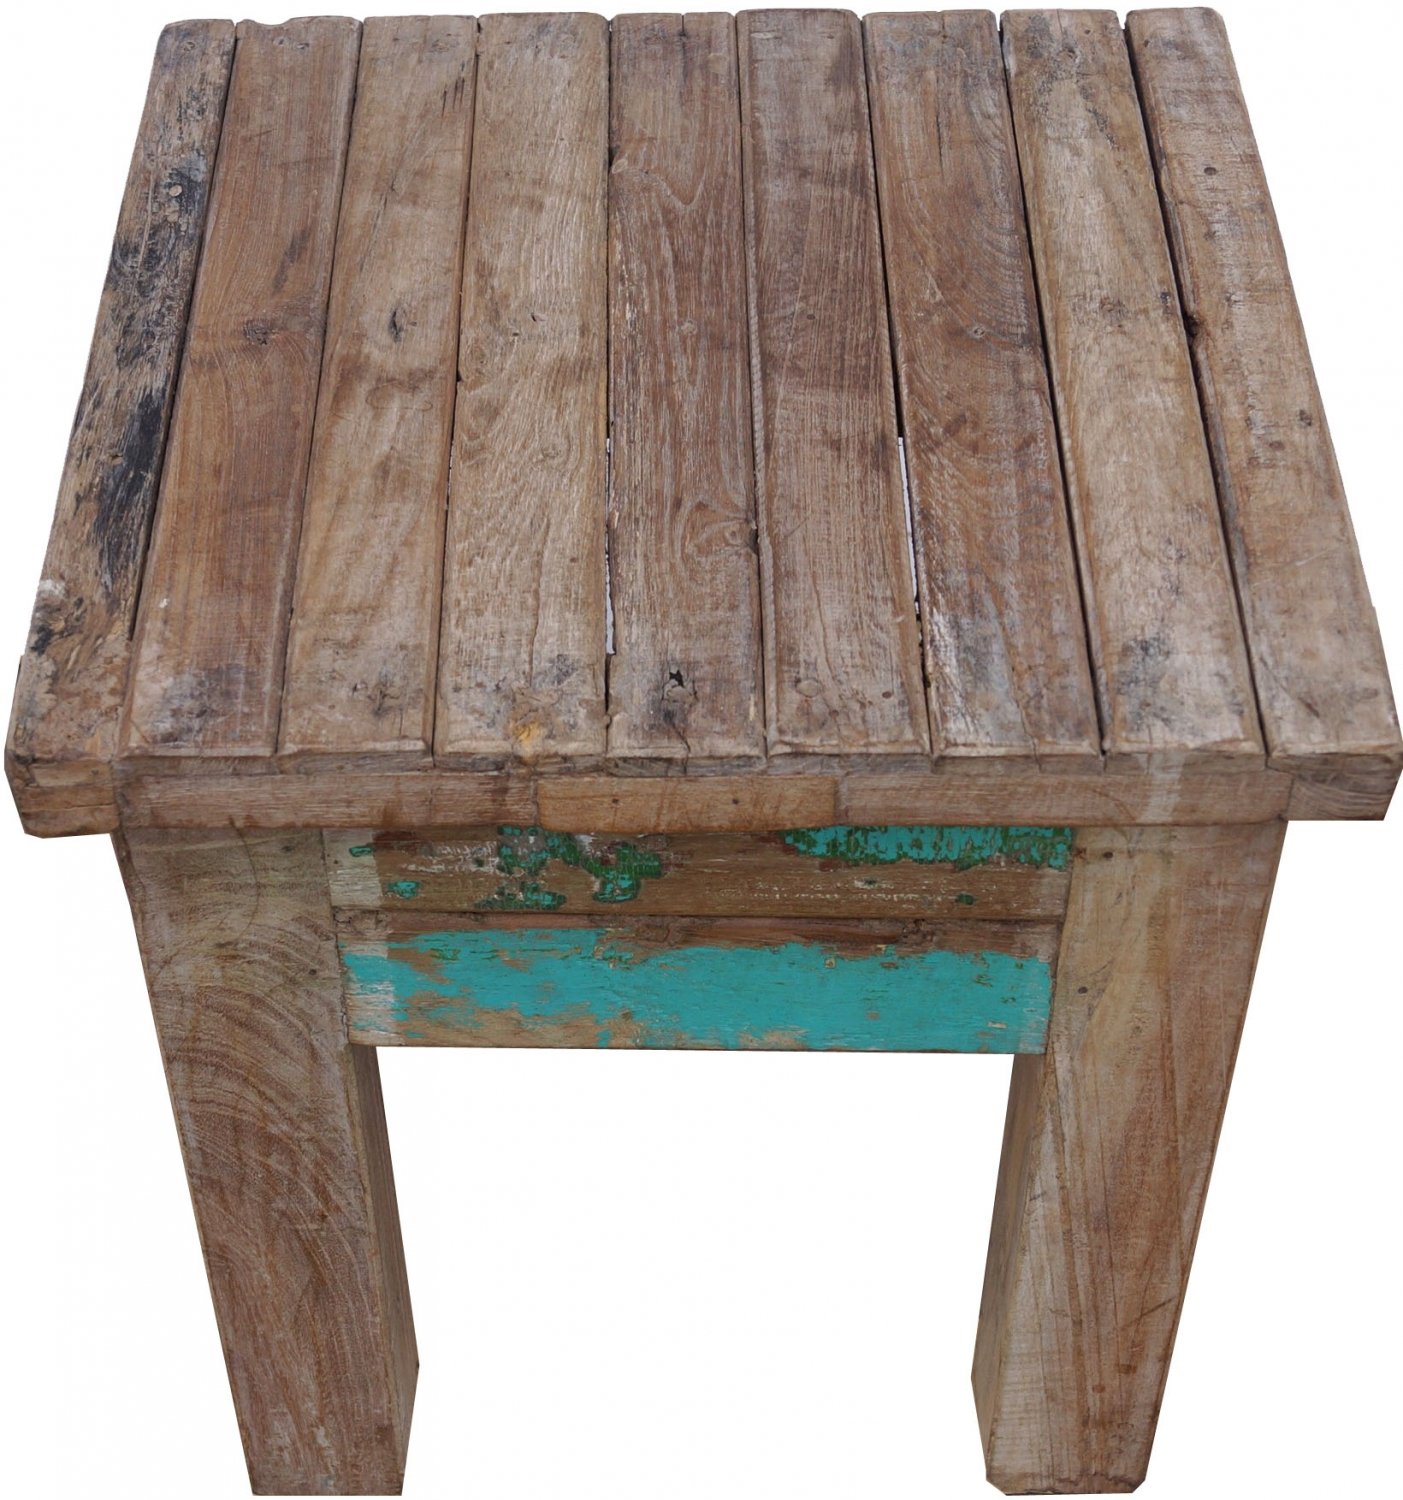 - Vintage Coffee Table, Coffee Table Made Of Recycled Wood - Model